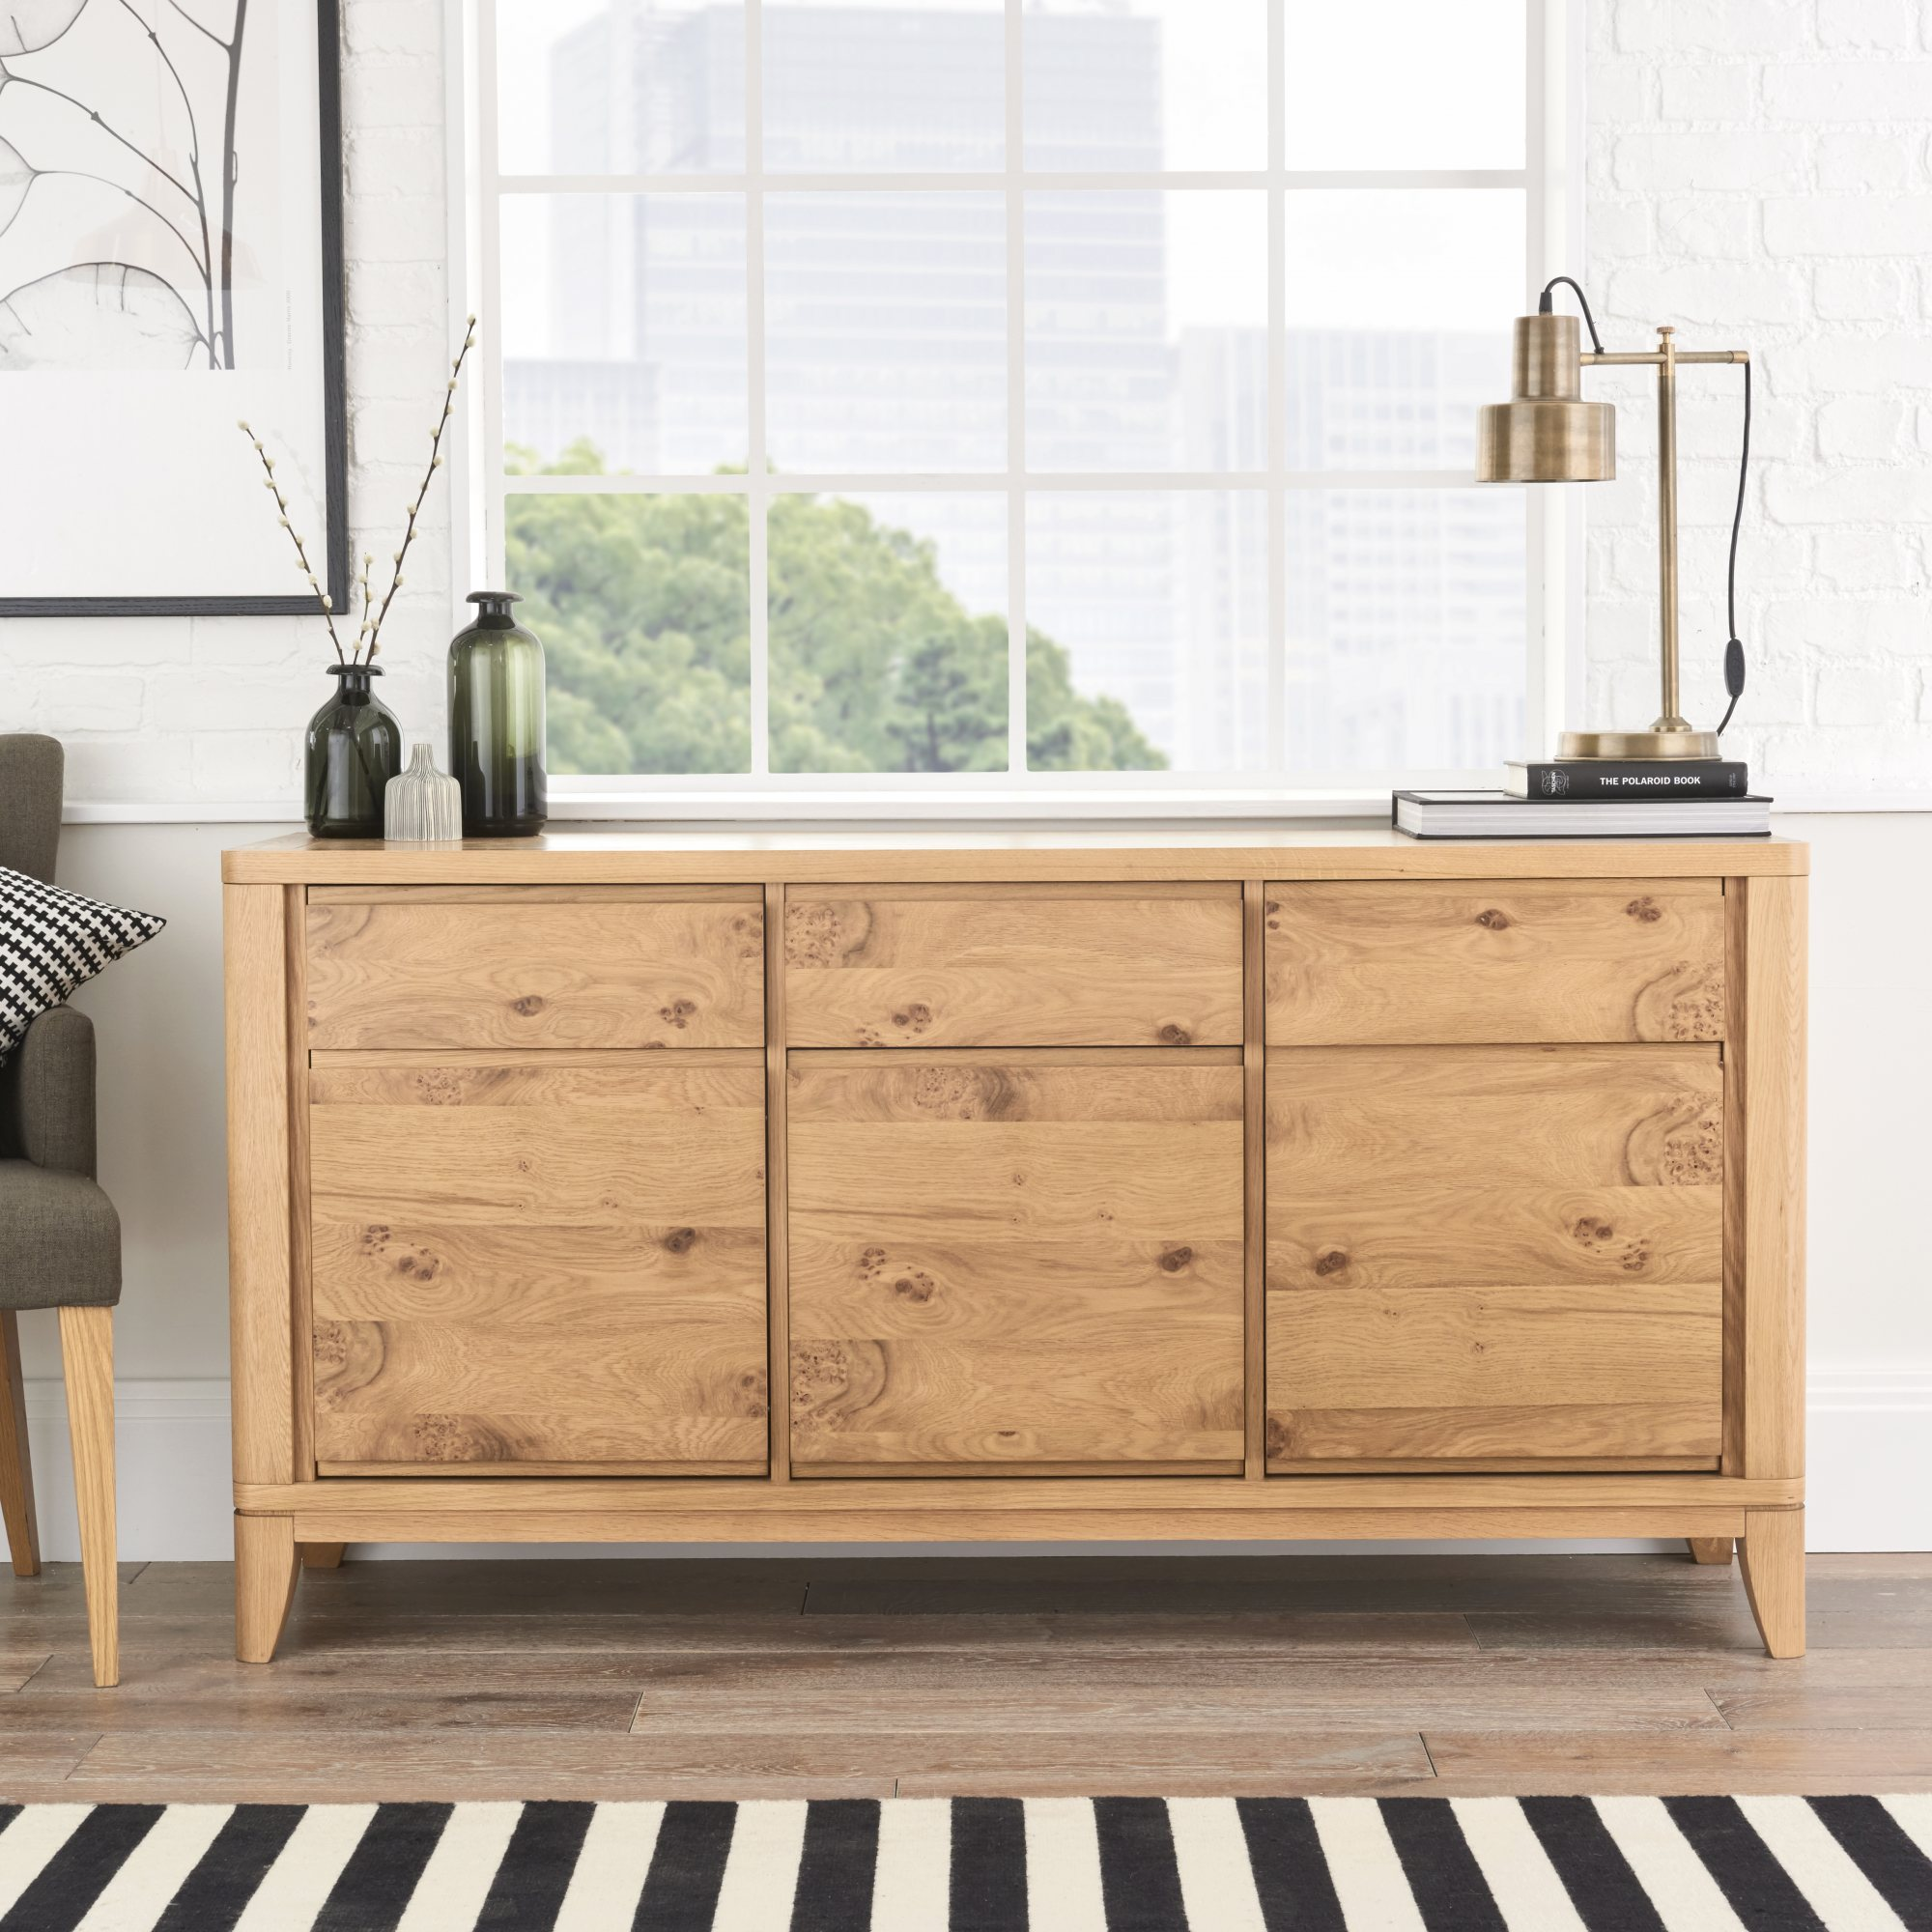 WILLOW PARK WIDE SIDEBOARD - L155cm x D45cm x H80cm